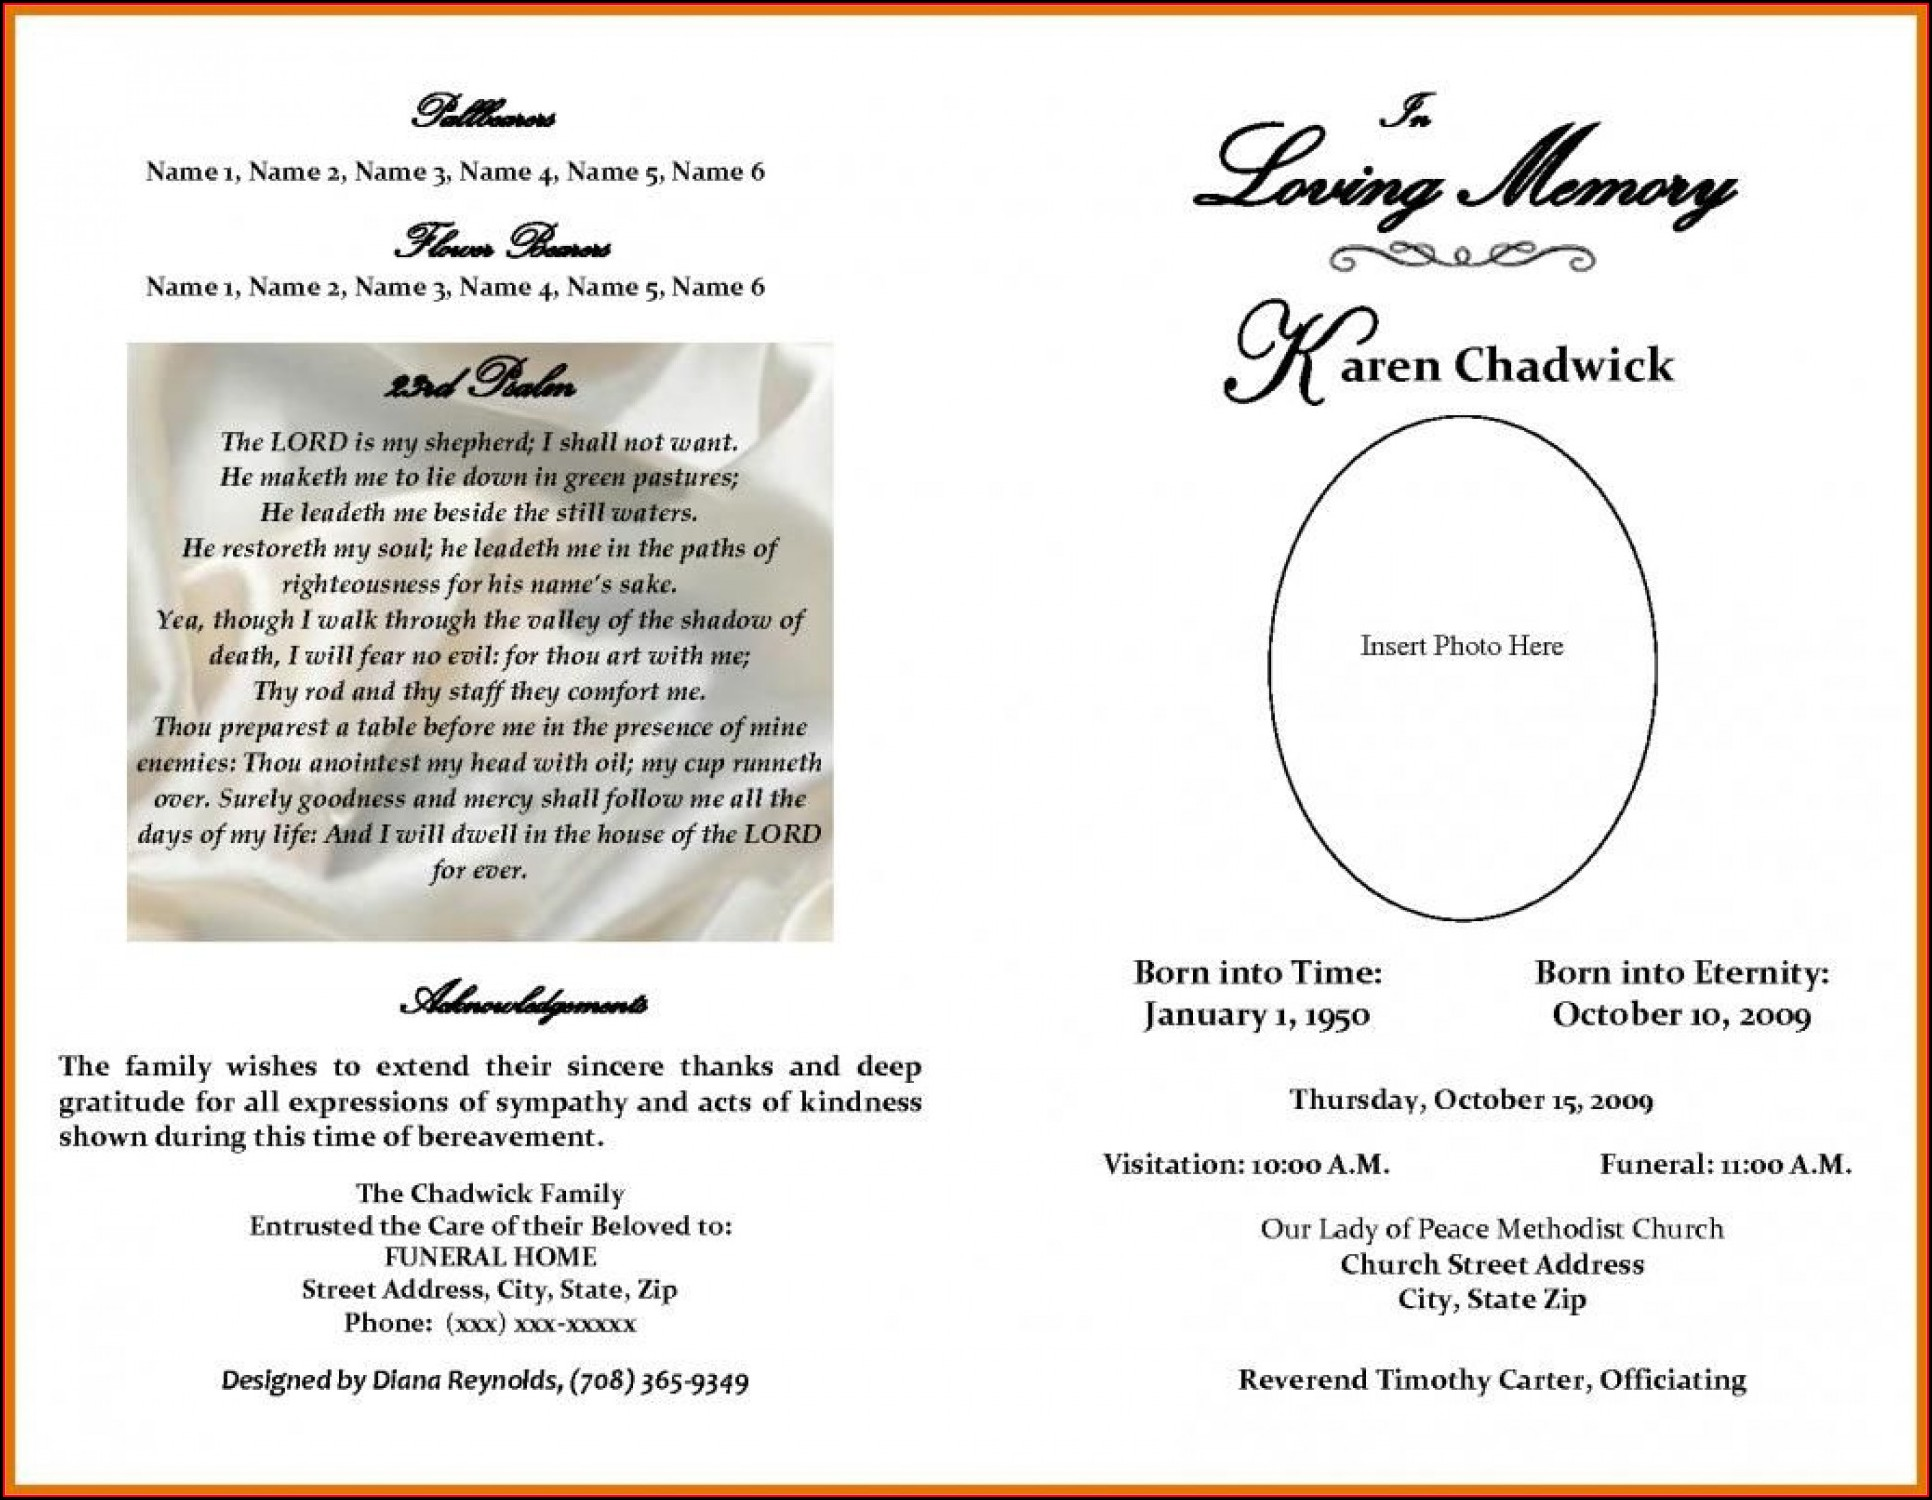 Obituary Program Layout